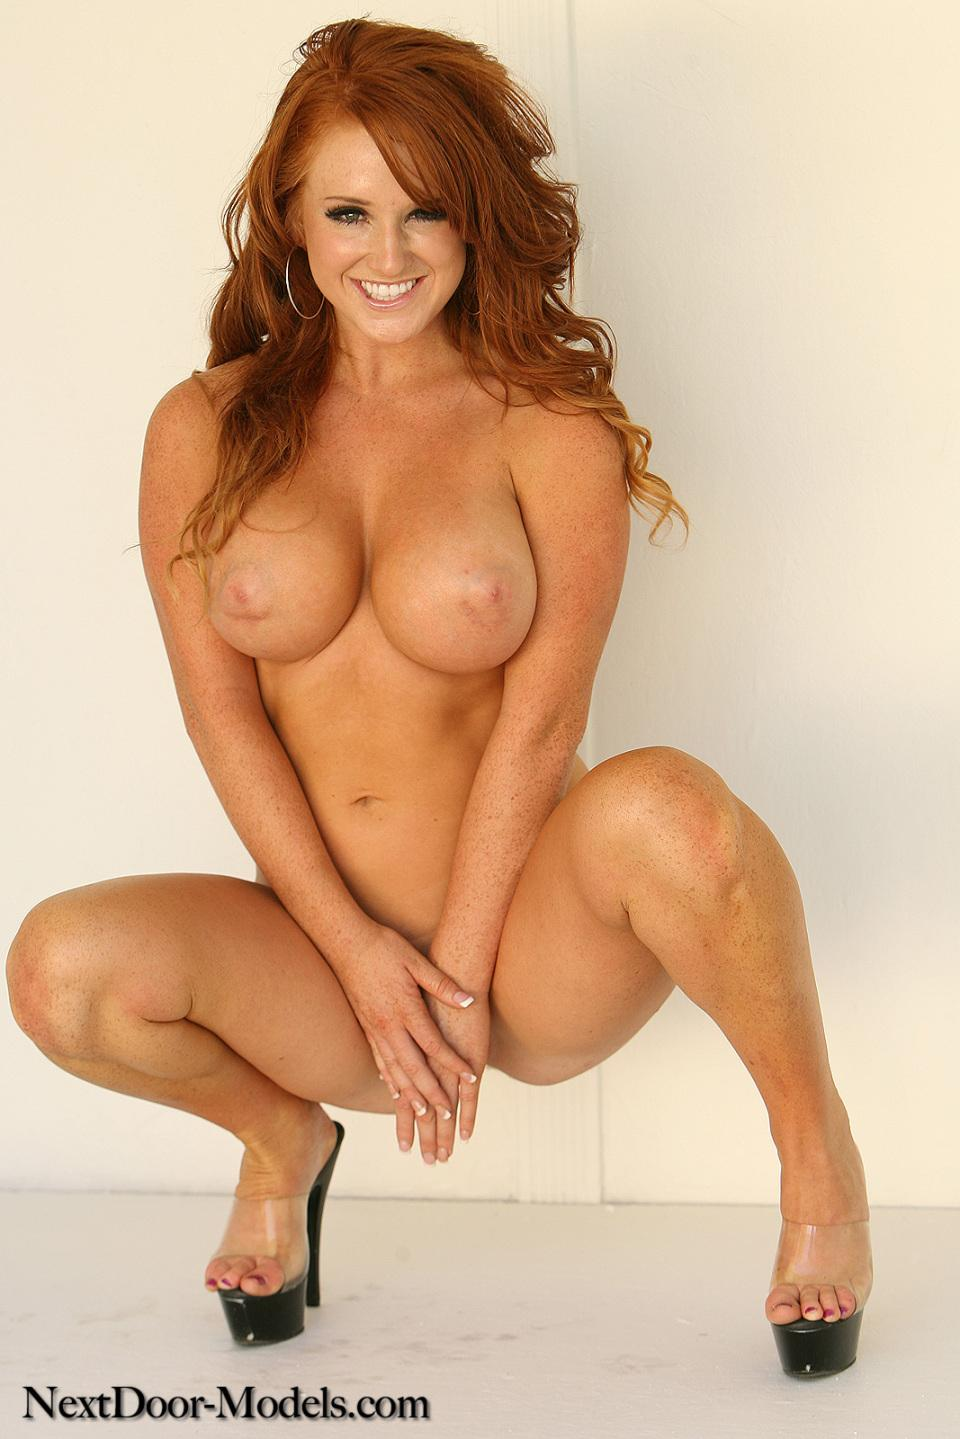 Information not Hot naked female red heads apologise